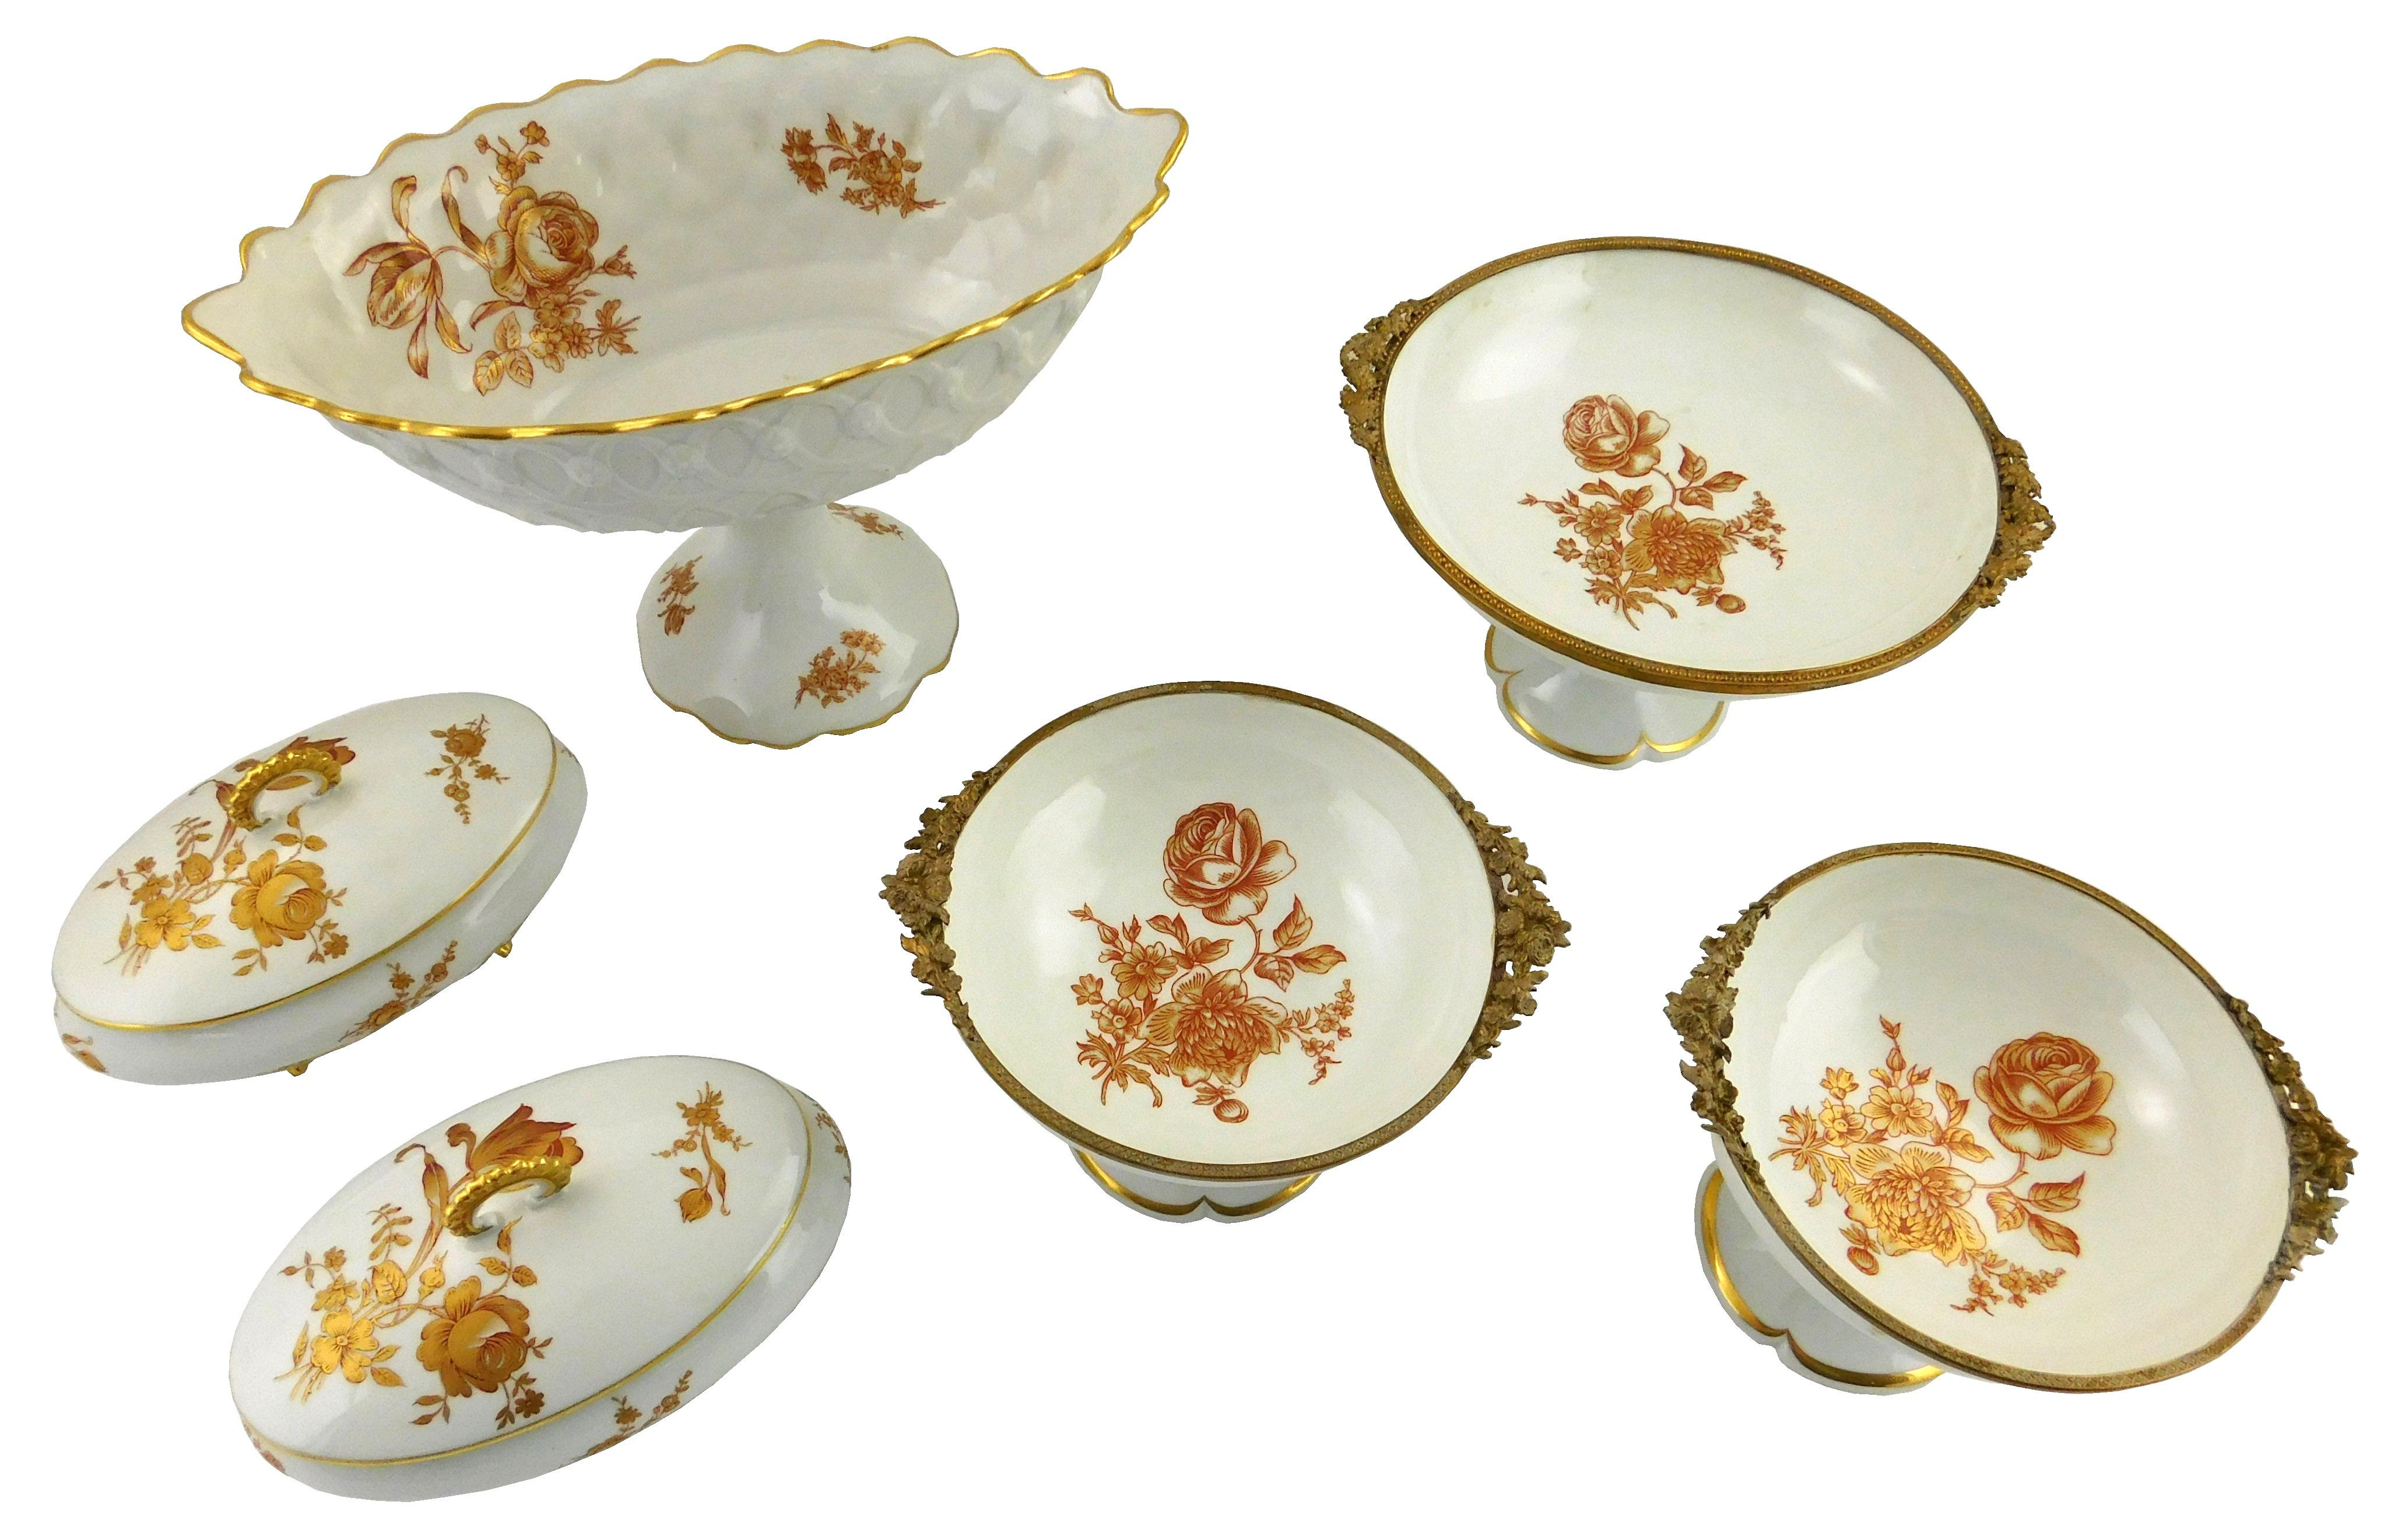 Limoges china serving ware and center pieces, iron red and gilt floral motifs, six pieces total: three graduated round compotes with...